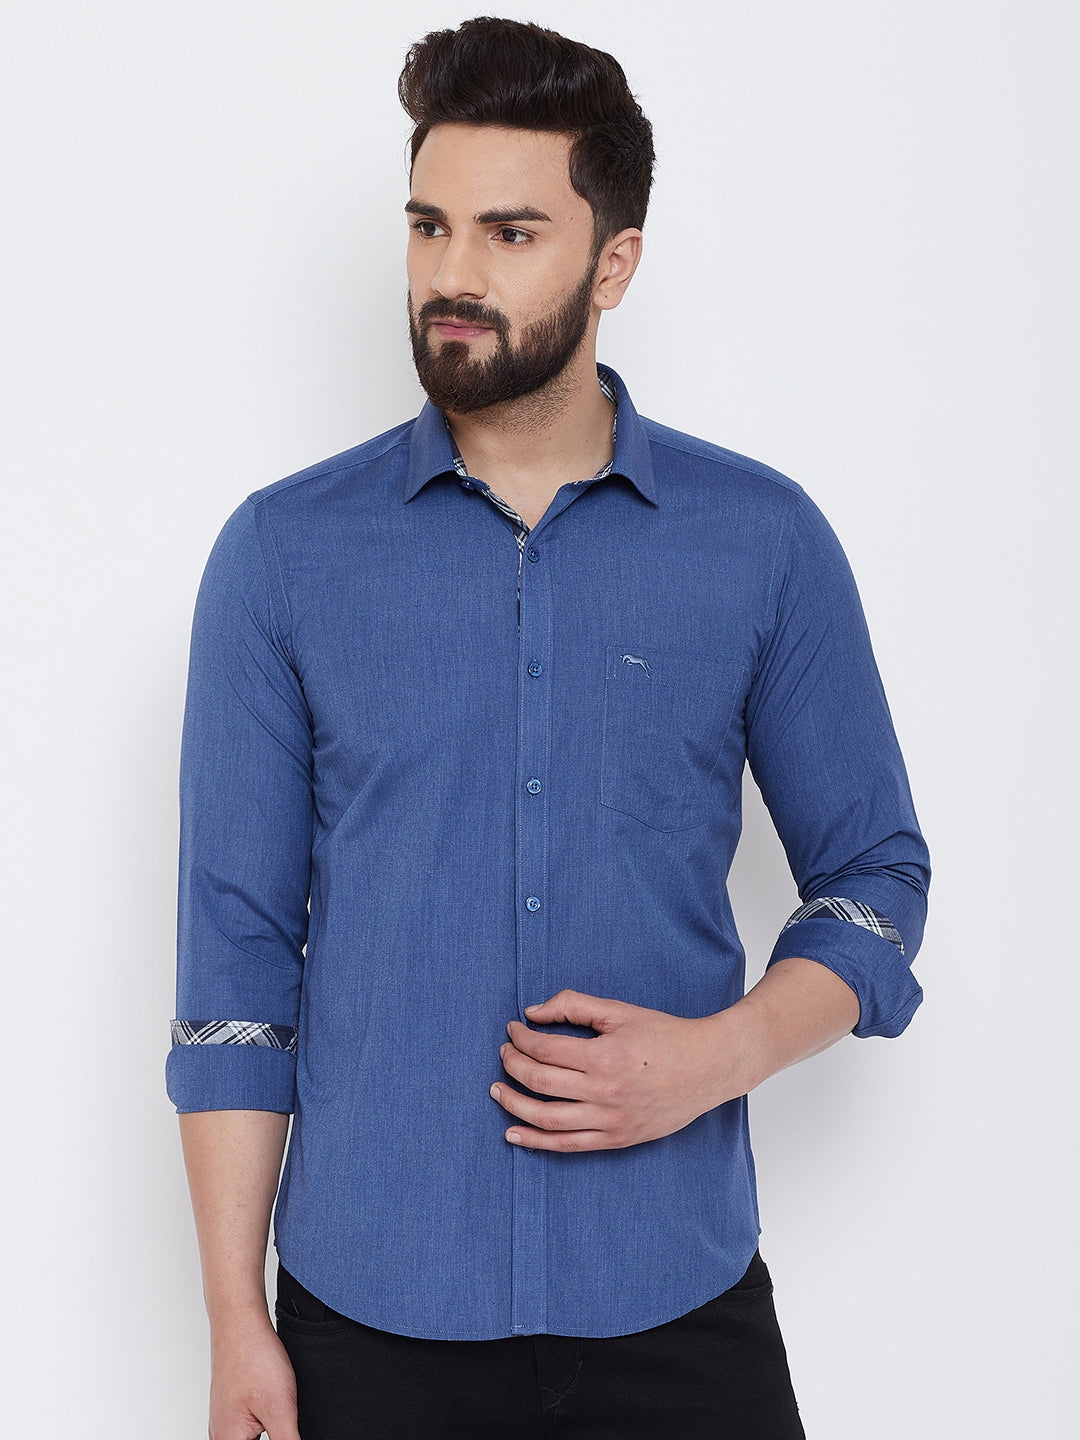 JUMP USA Men Blue Solid Cotton Casual Shirts